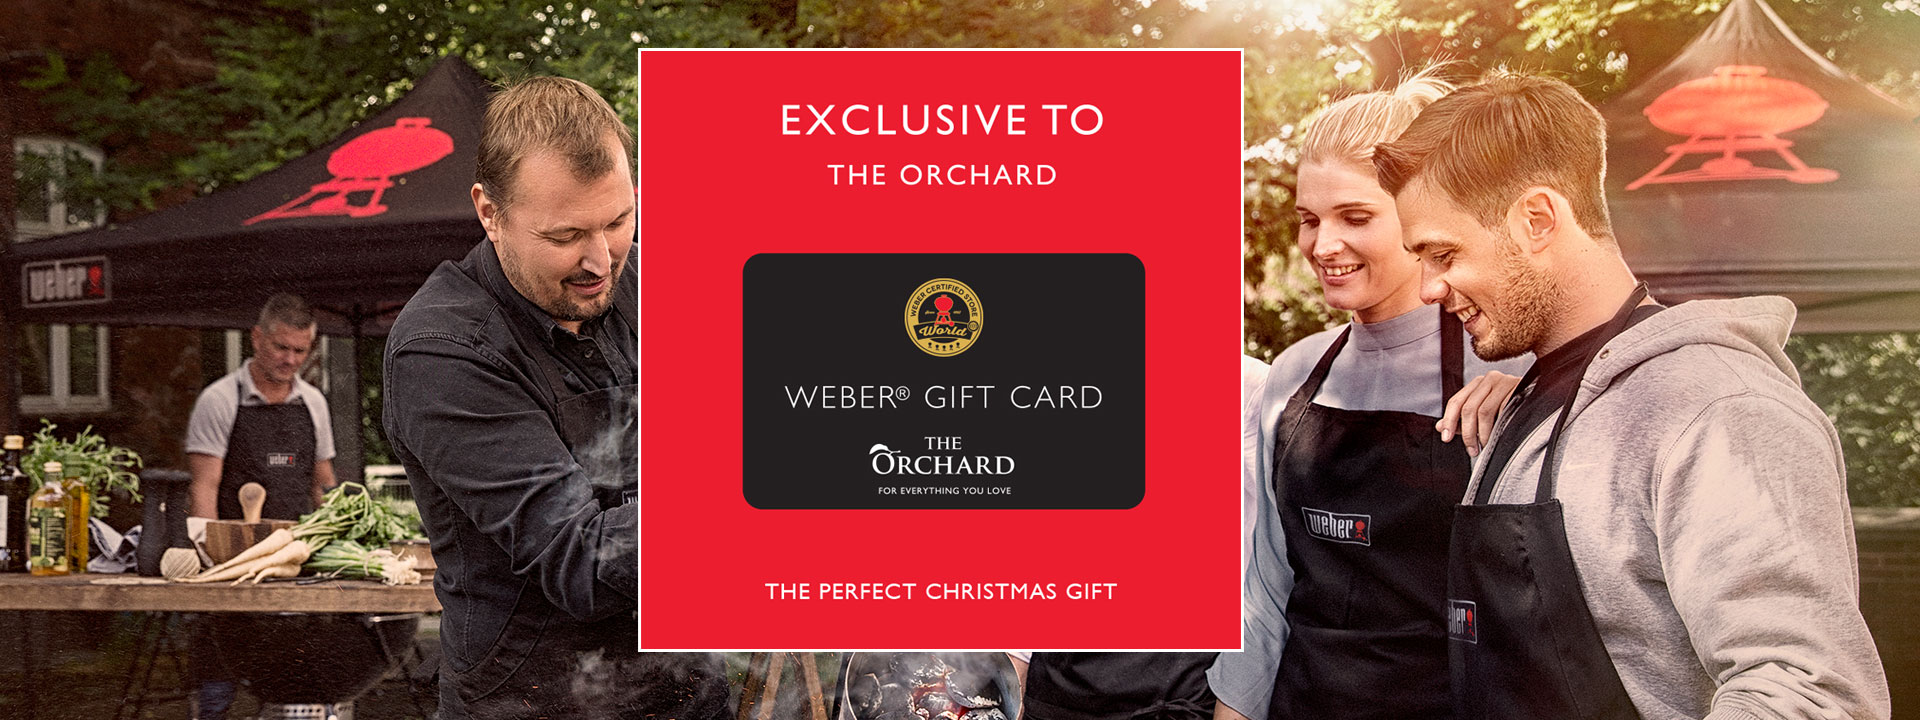 Weber Gift Card Exclusive To The Orchard